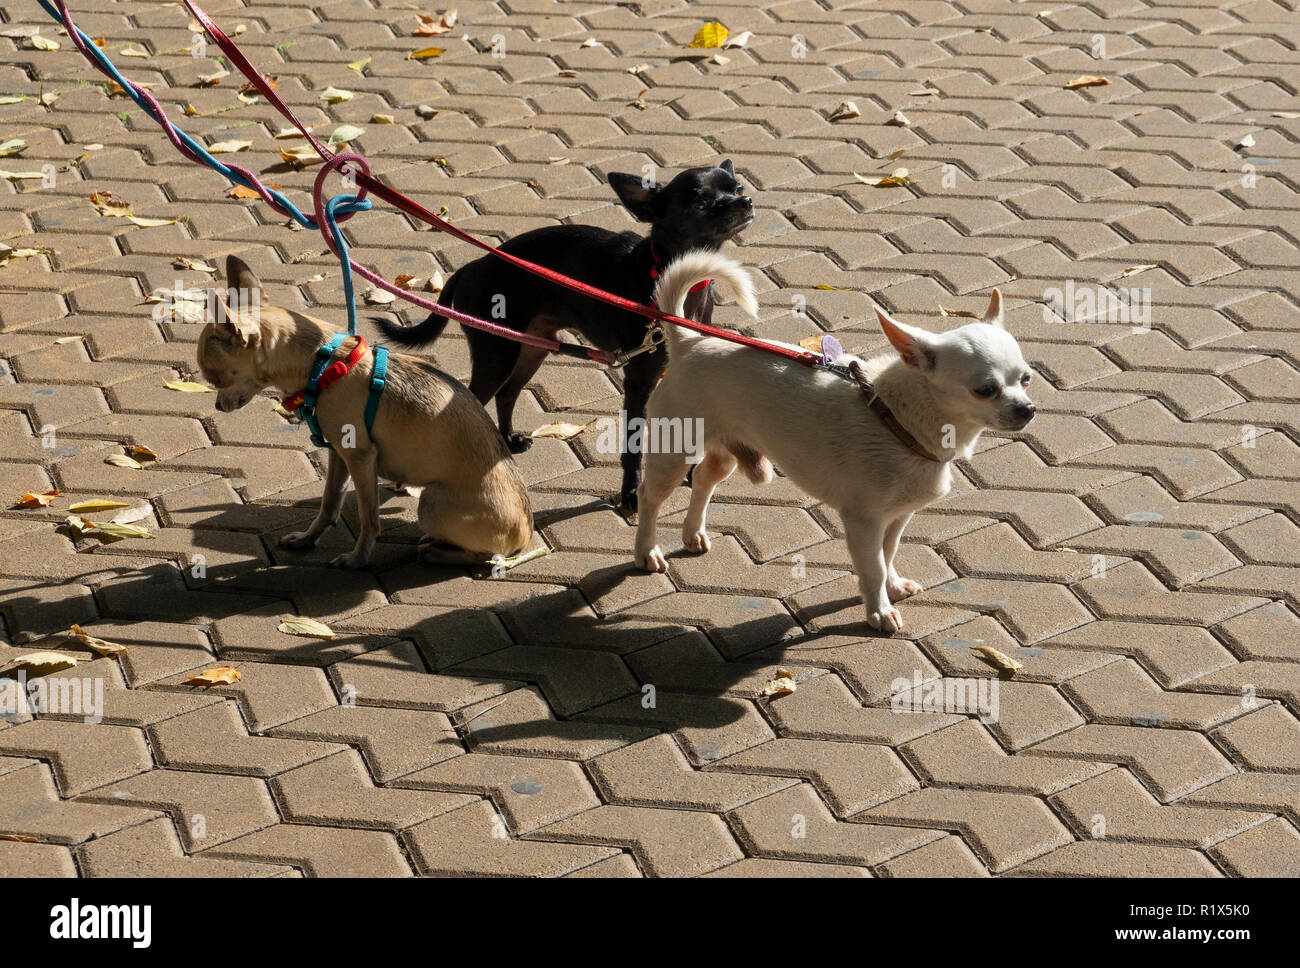 Tan, black and white colored Mexican Chihuahua dogs - Stock Image